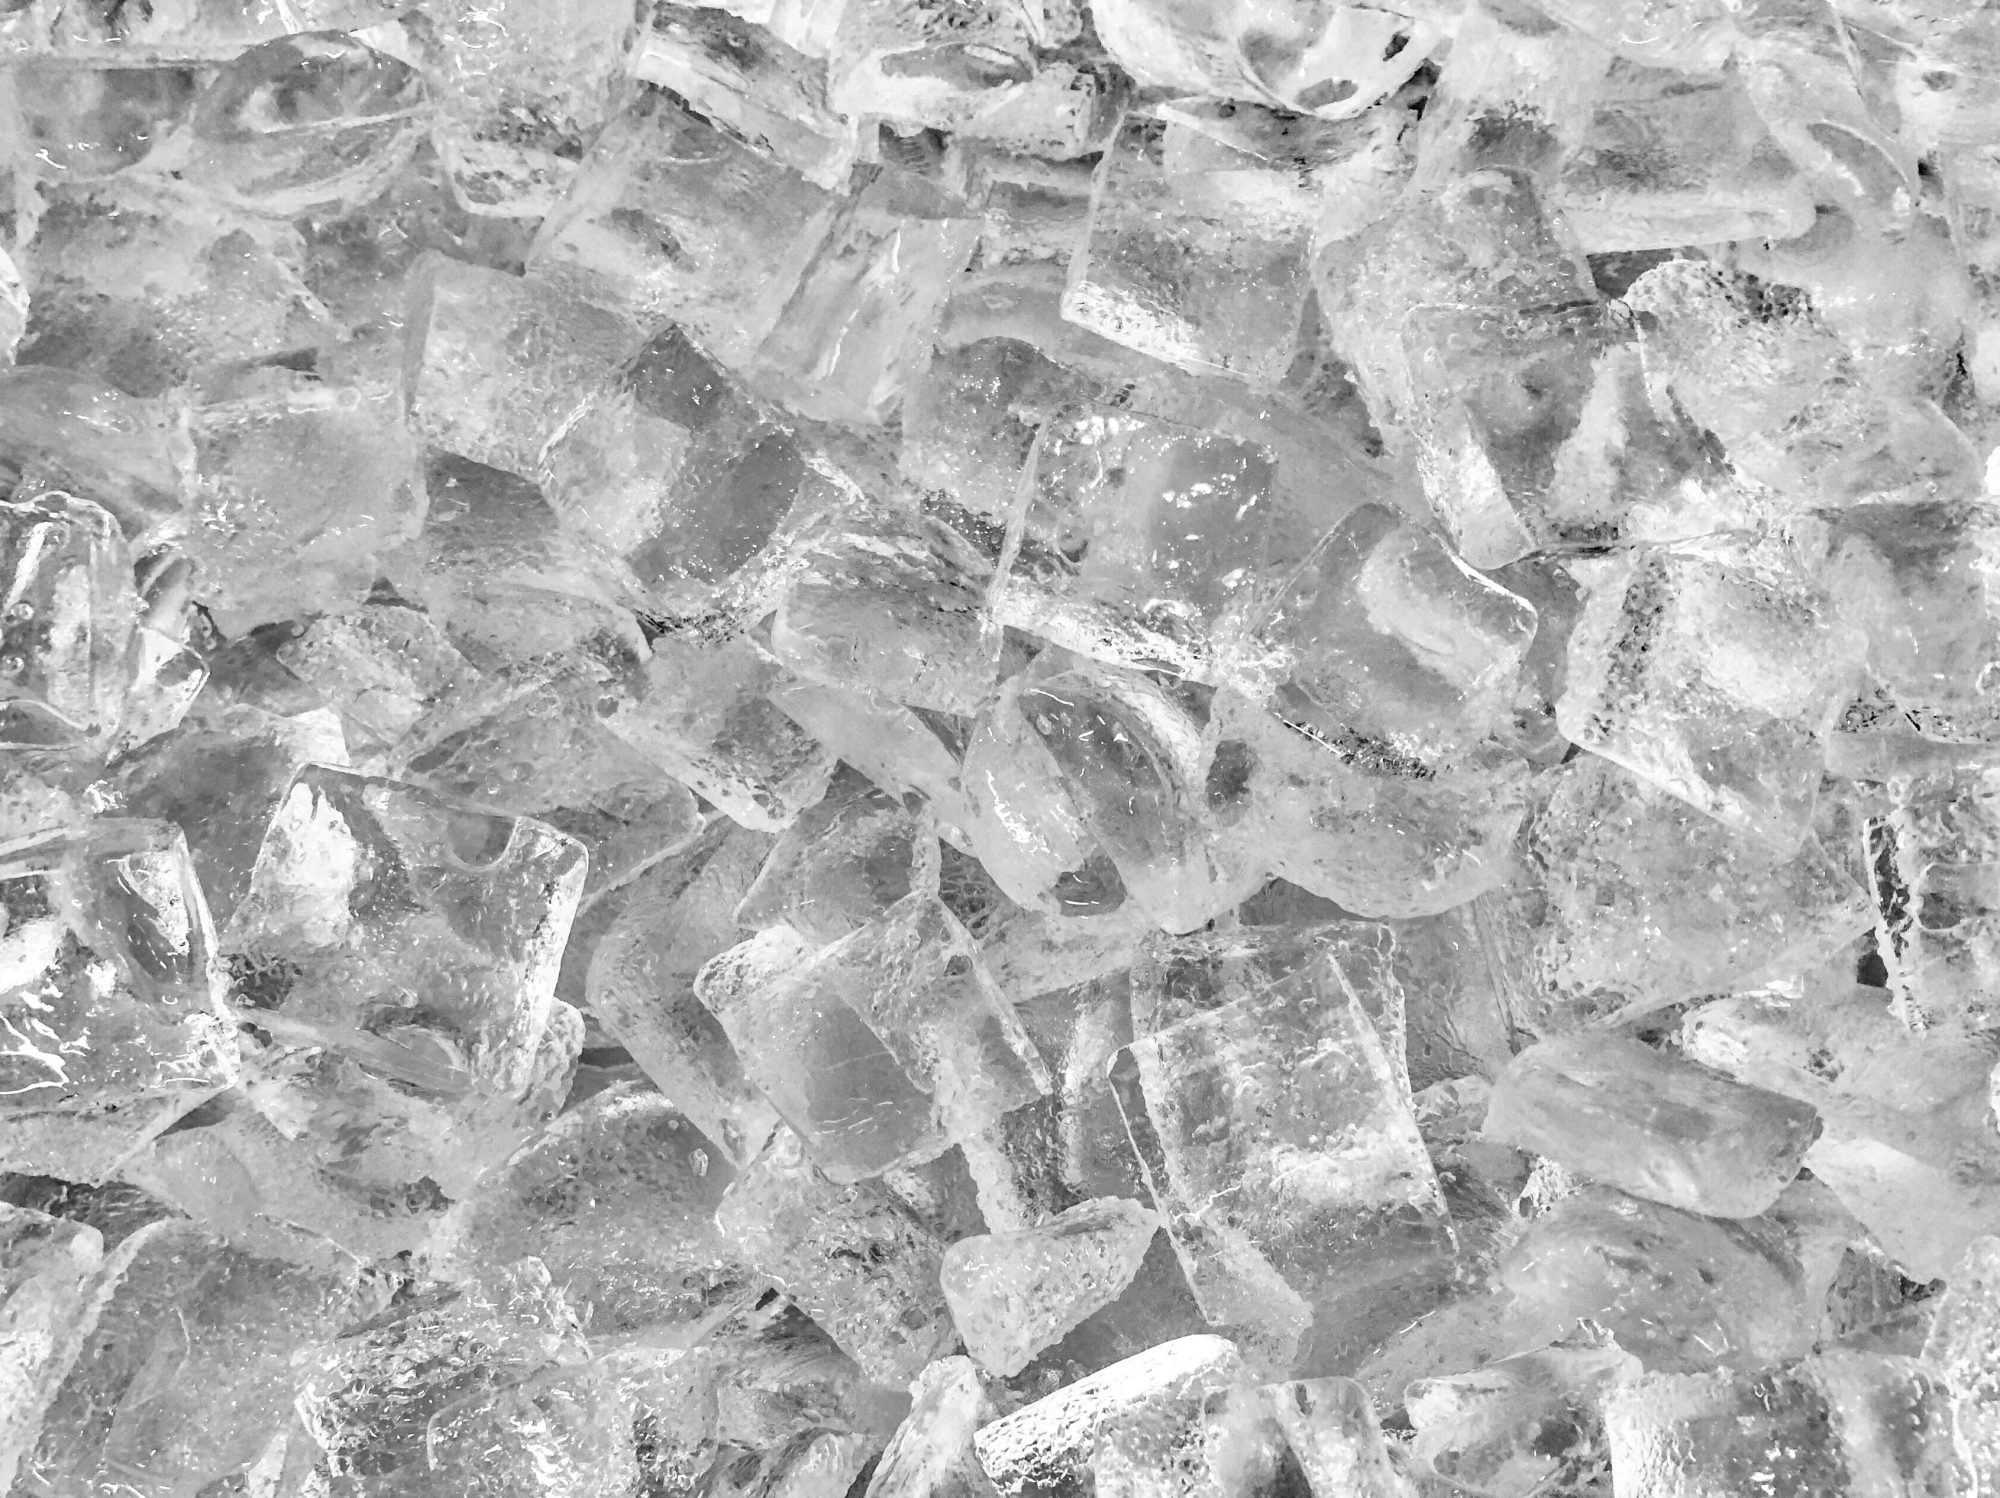 Ice cubes getty 2/20/20